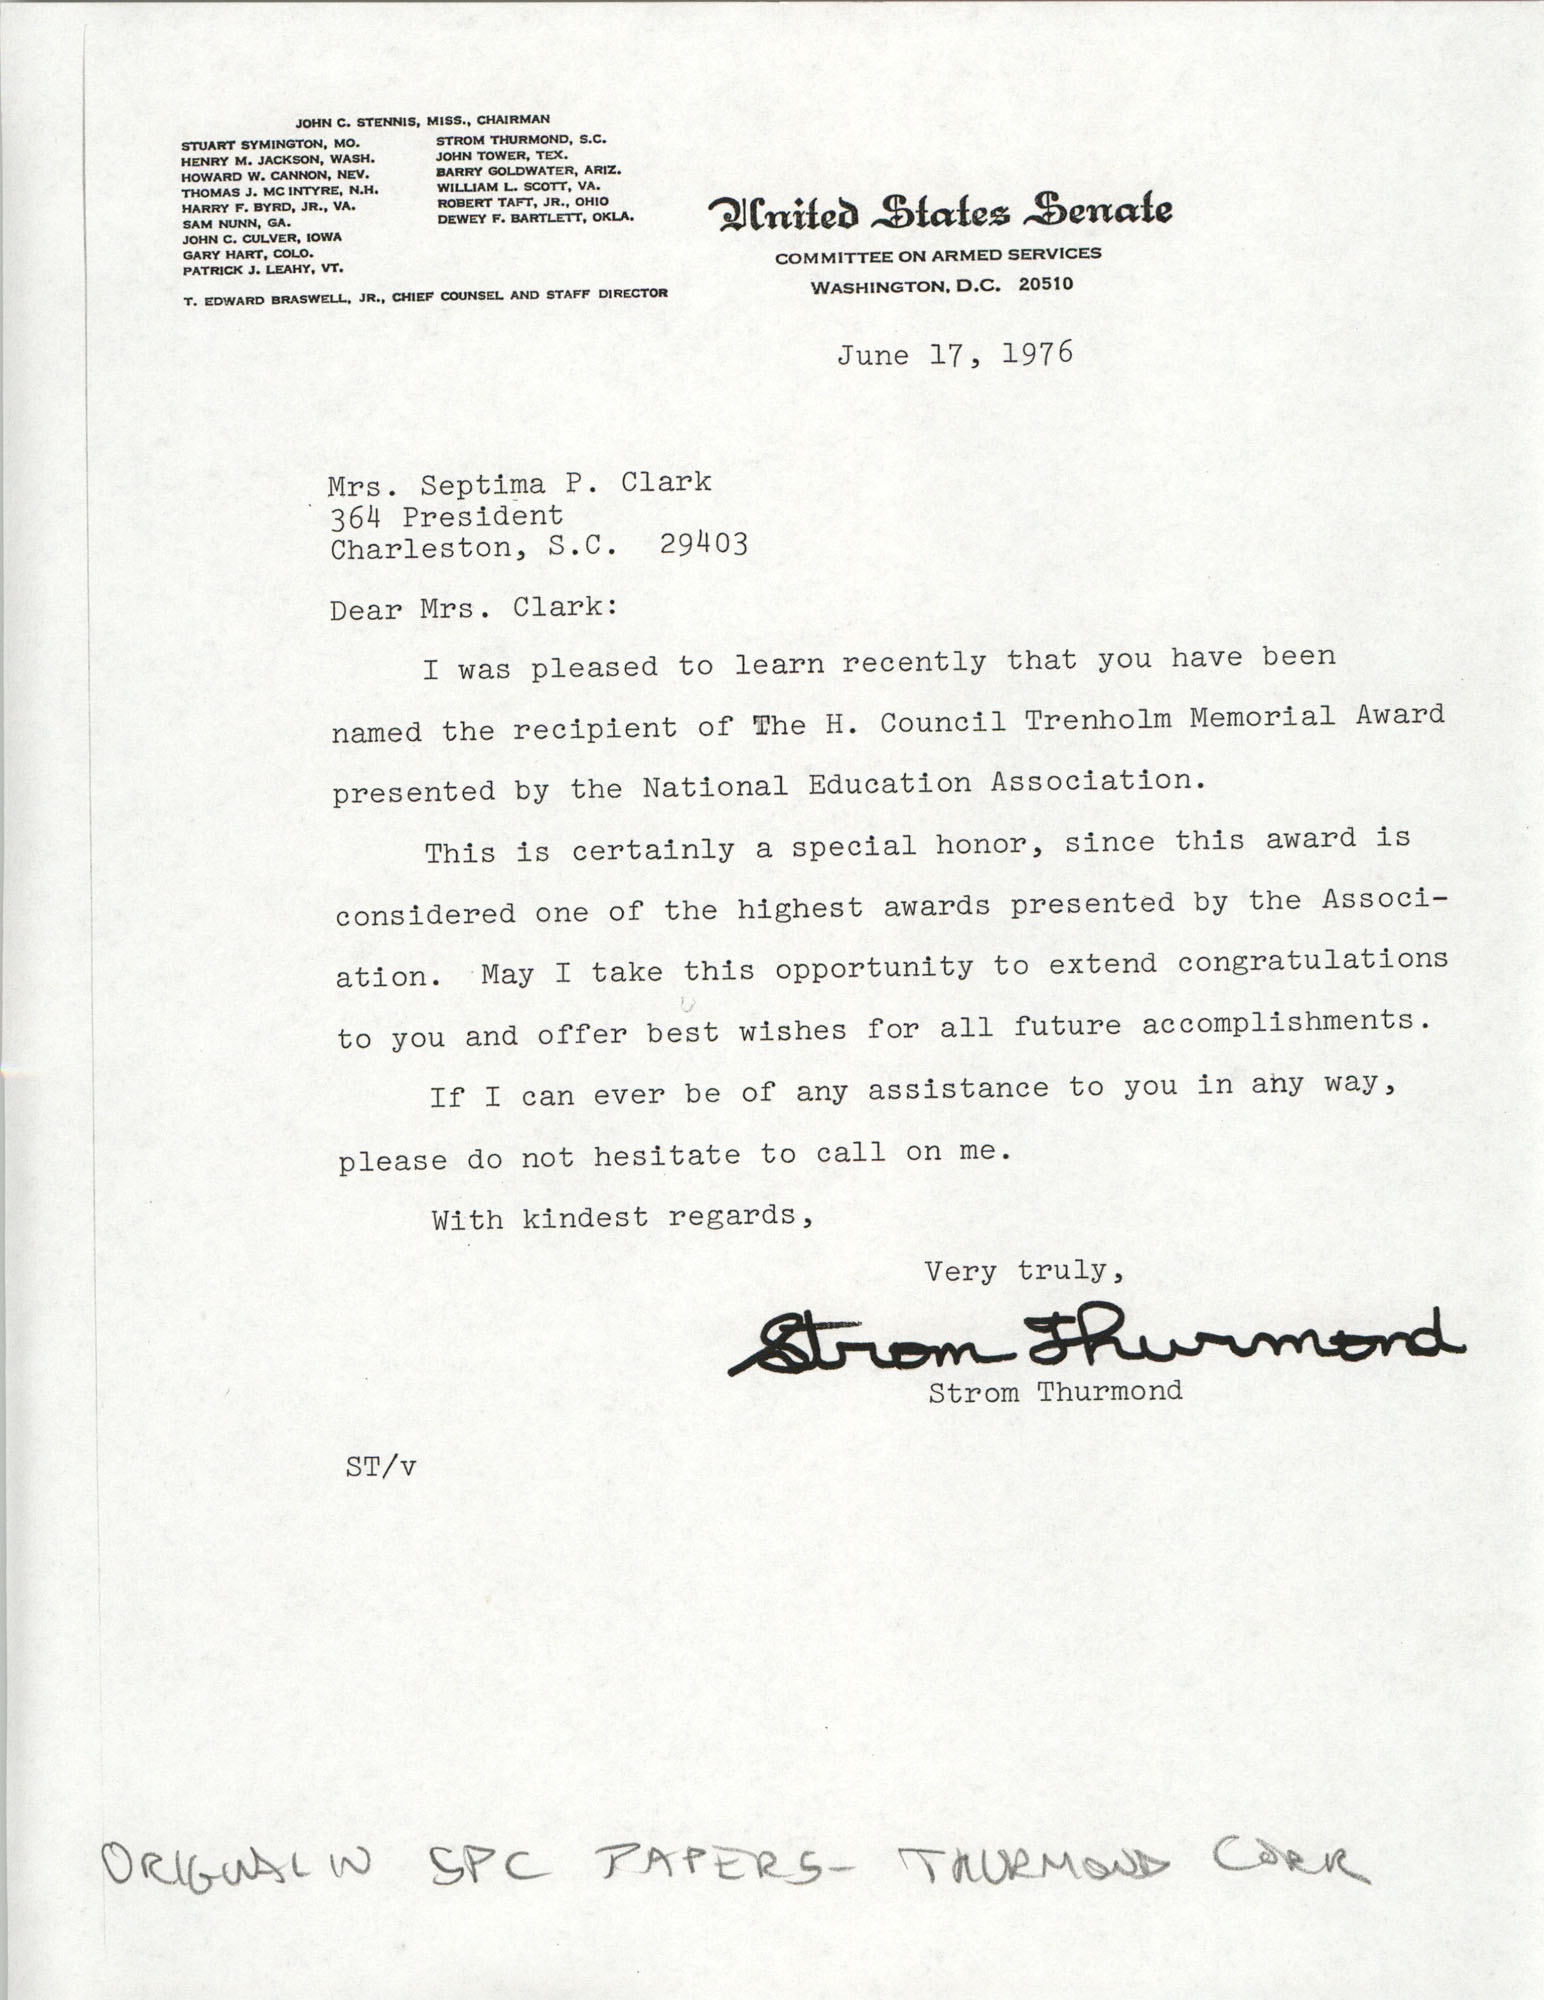 Letter from South Carolina Senator, Strom Thurmond to Septima P. Clark, H. Councill Trenholm Memorial Award